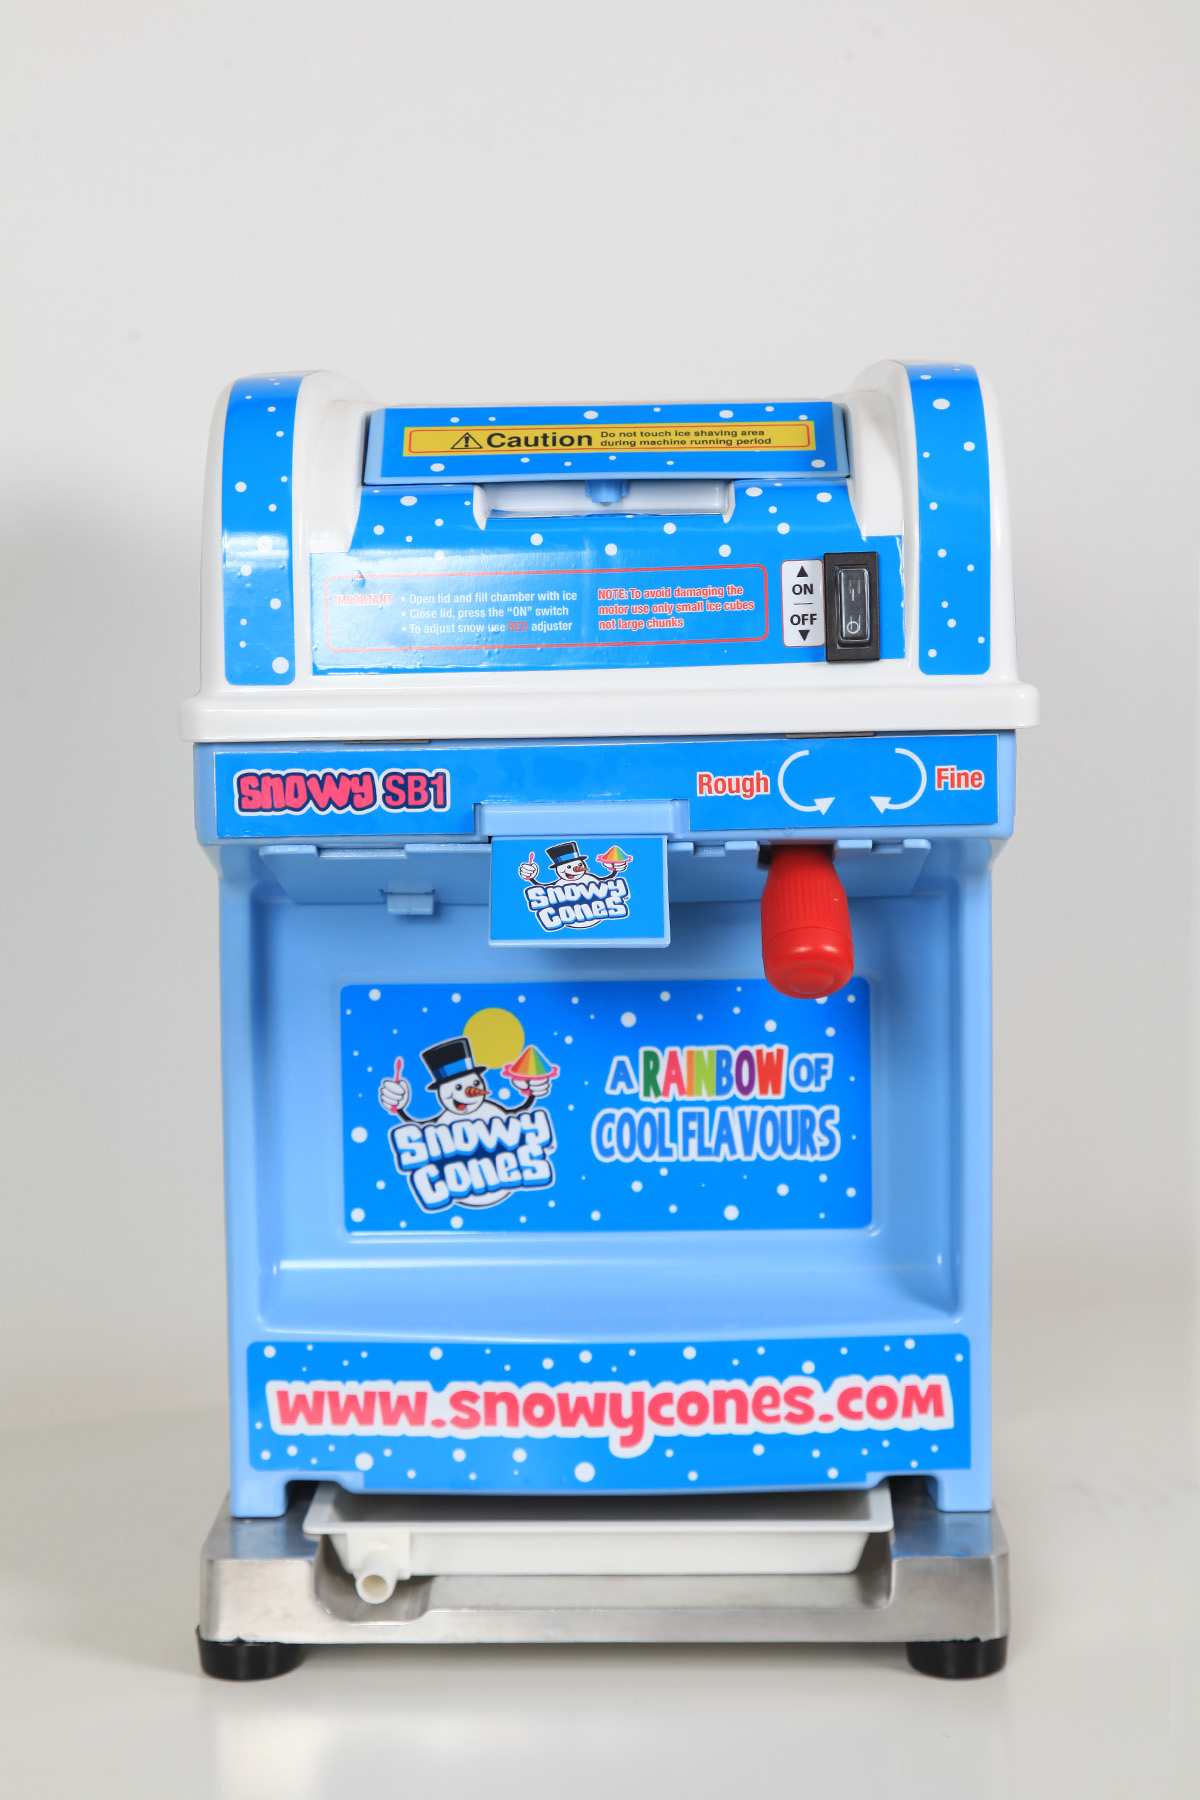 http://www.snowycones.com/shop/images/products/SnowyConesSB1Shaver.JPG